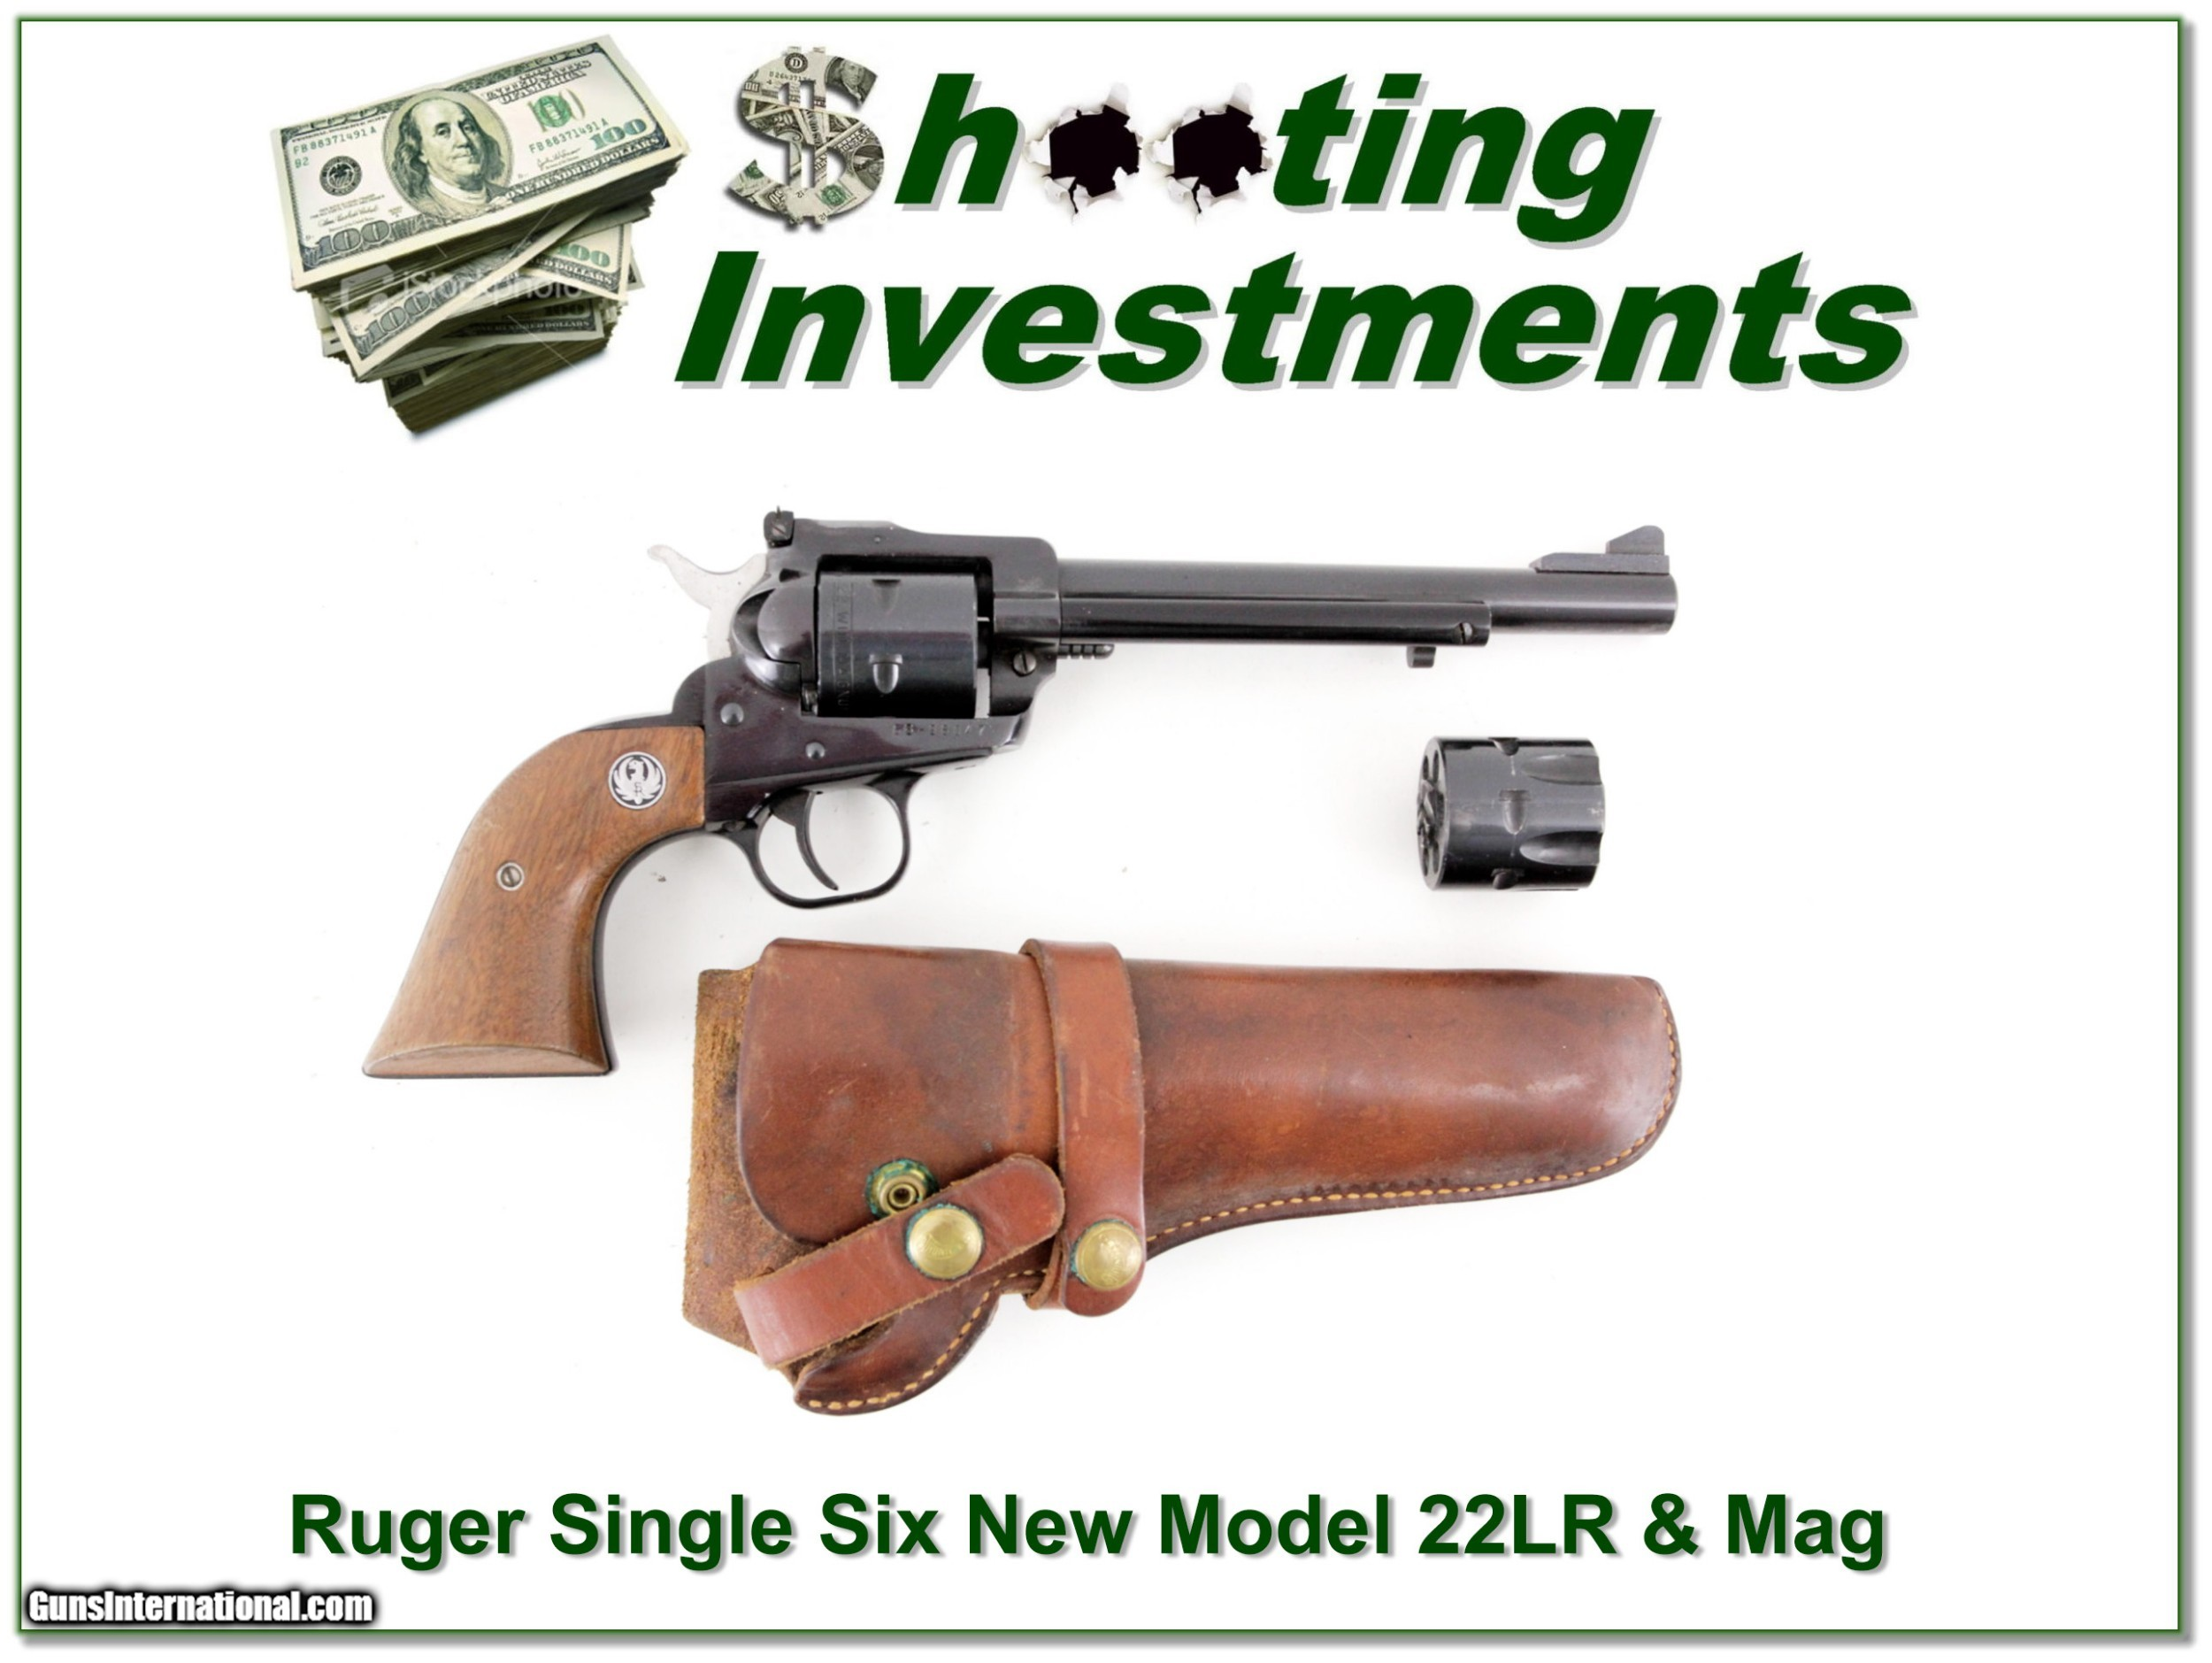 Ruger Single Six New Model Holster 22 and 22 Mag cylinders